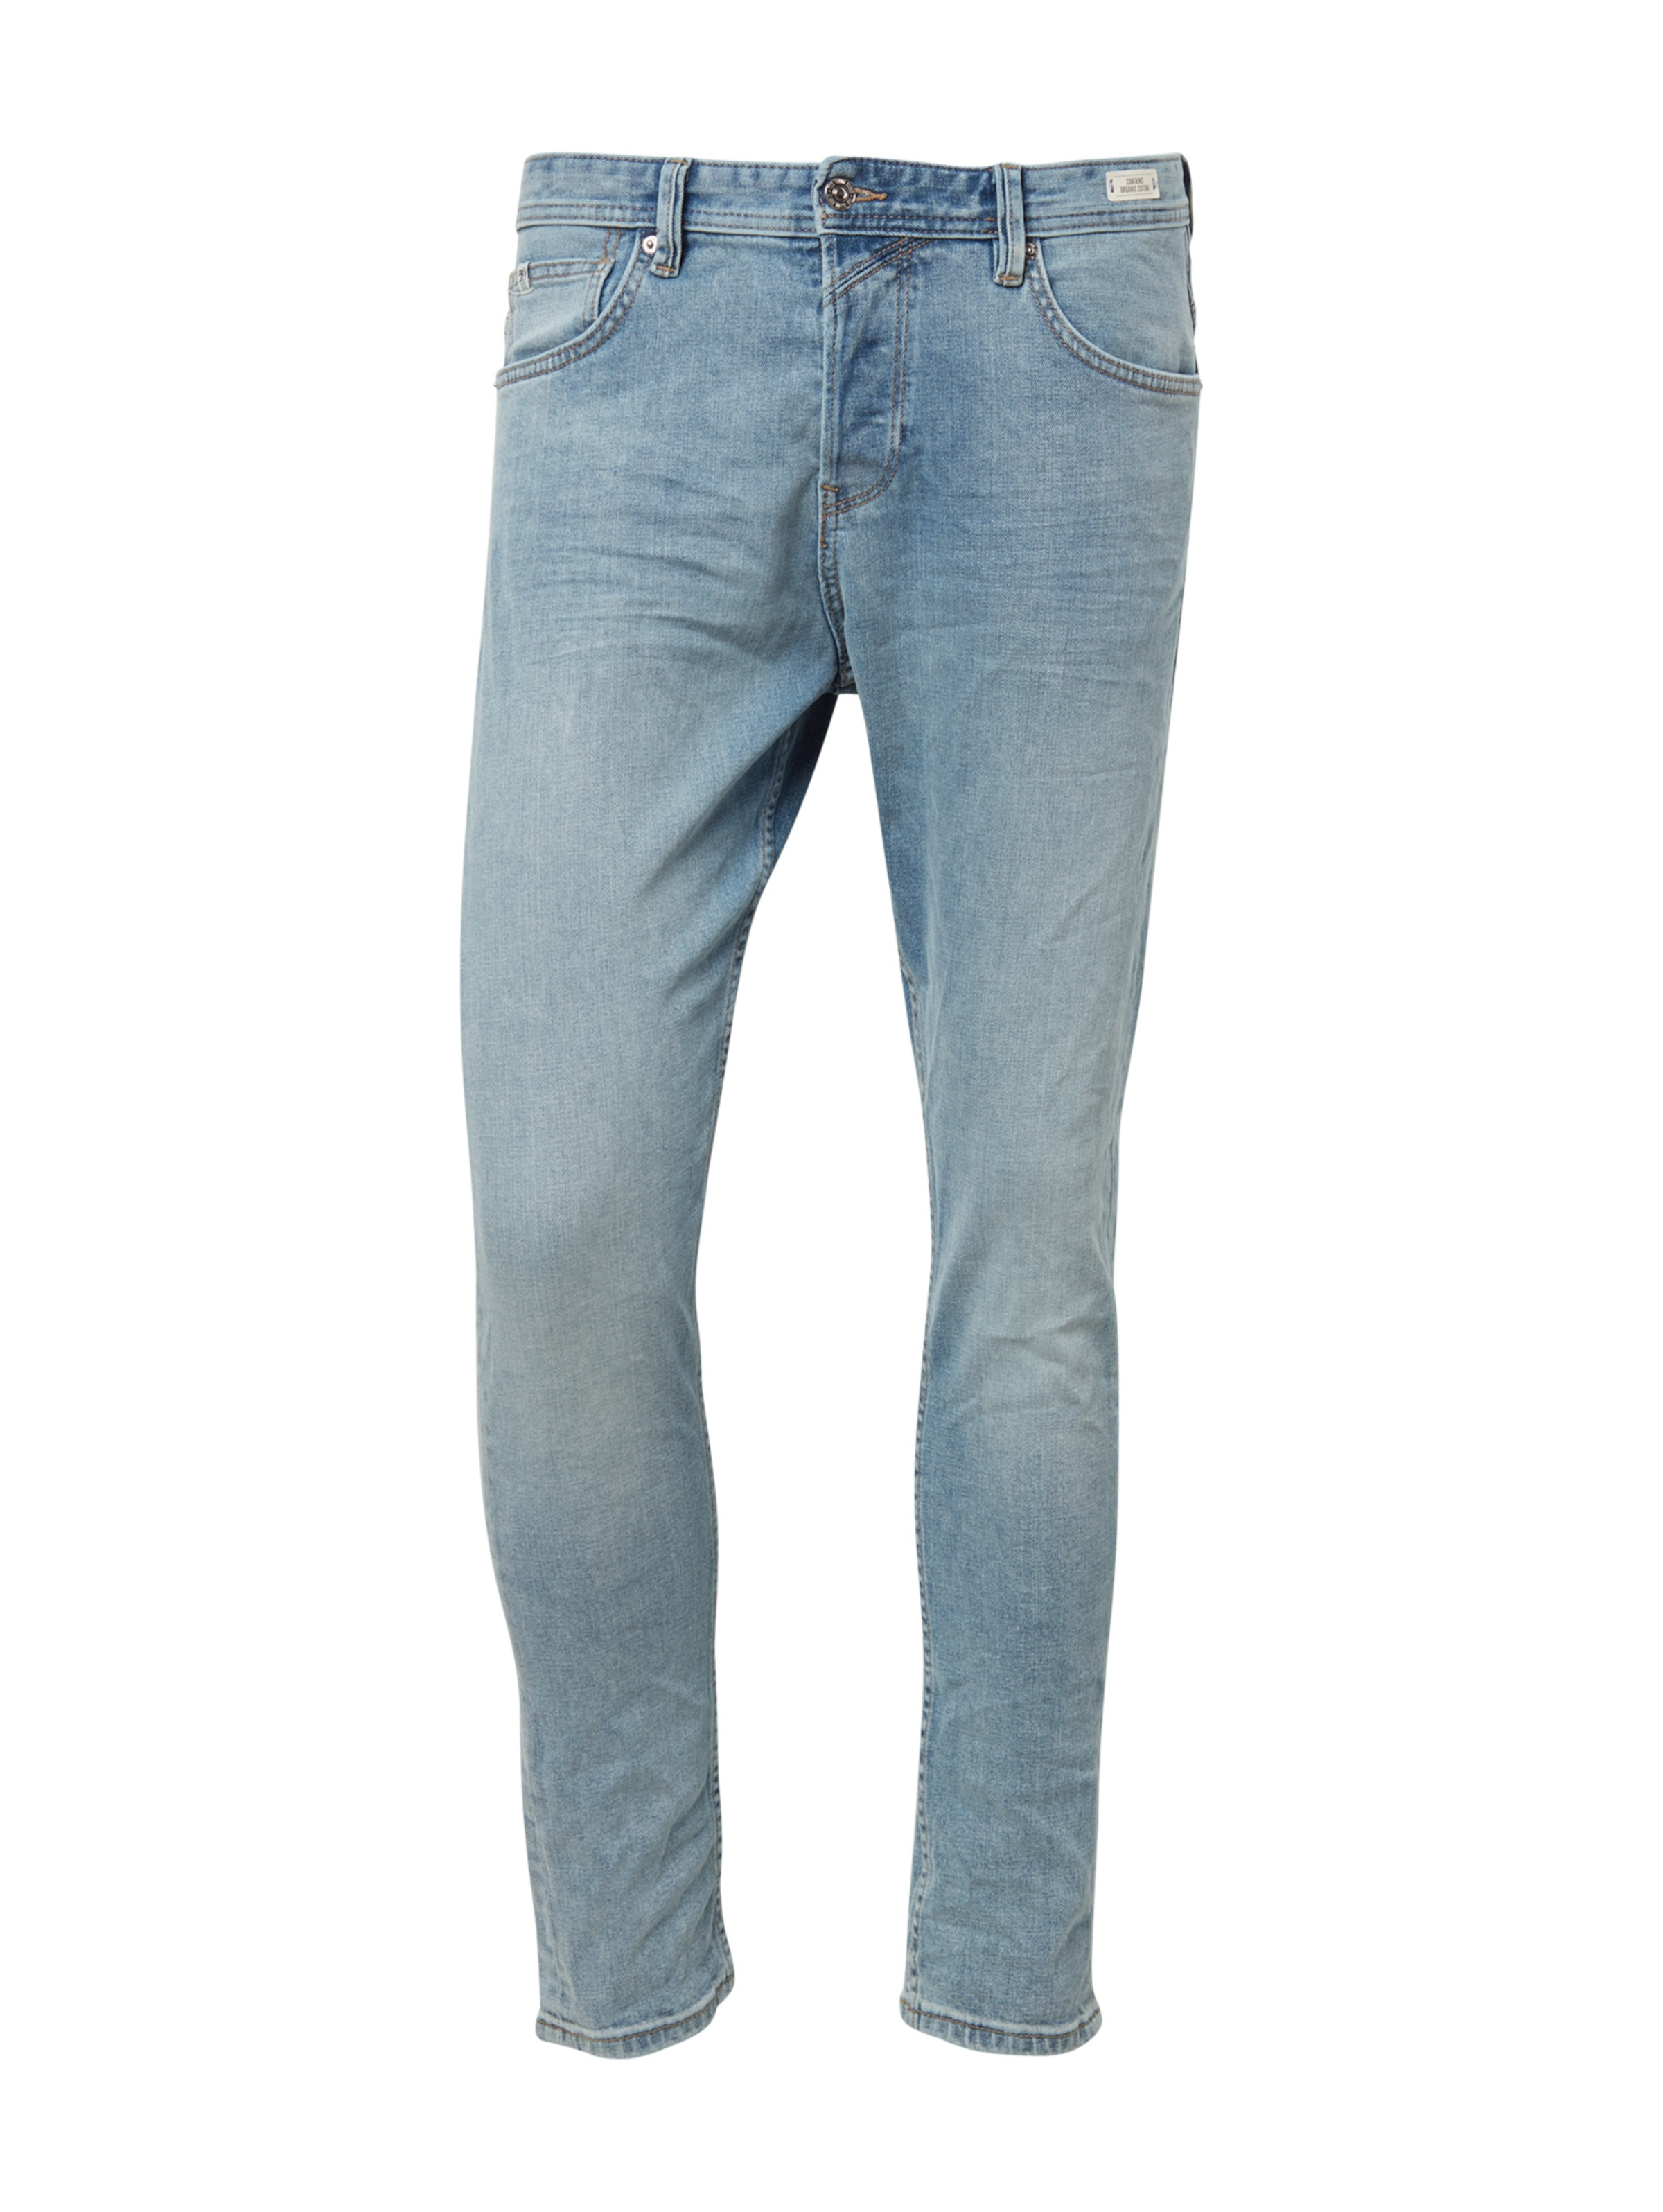 Jeans Hellblau Tailor In Denim Tom TFJ3ulKc1